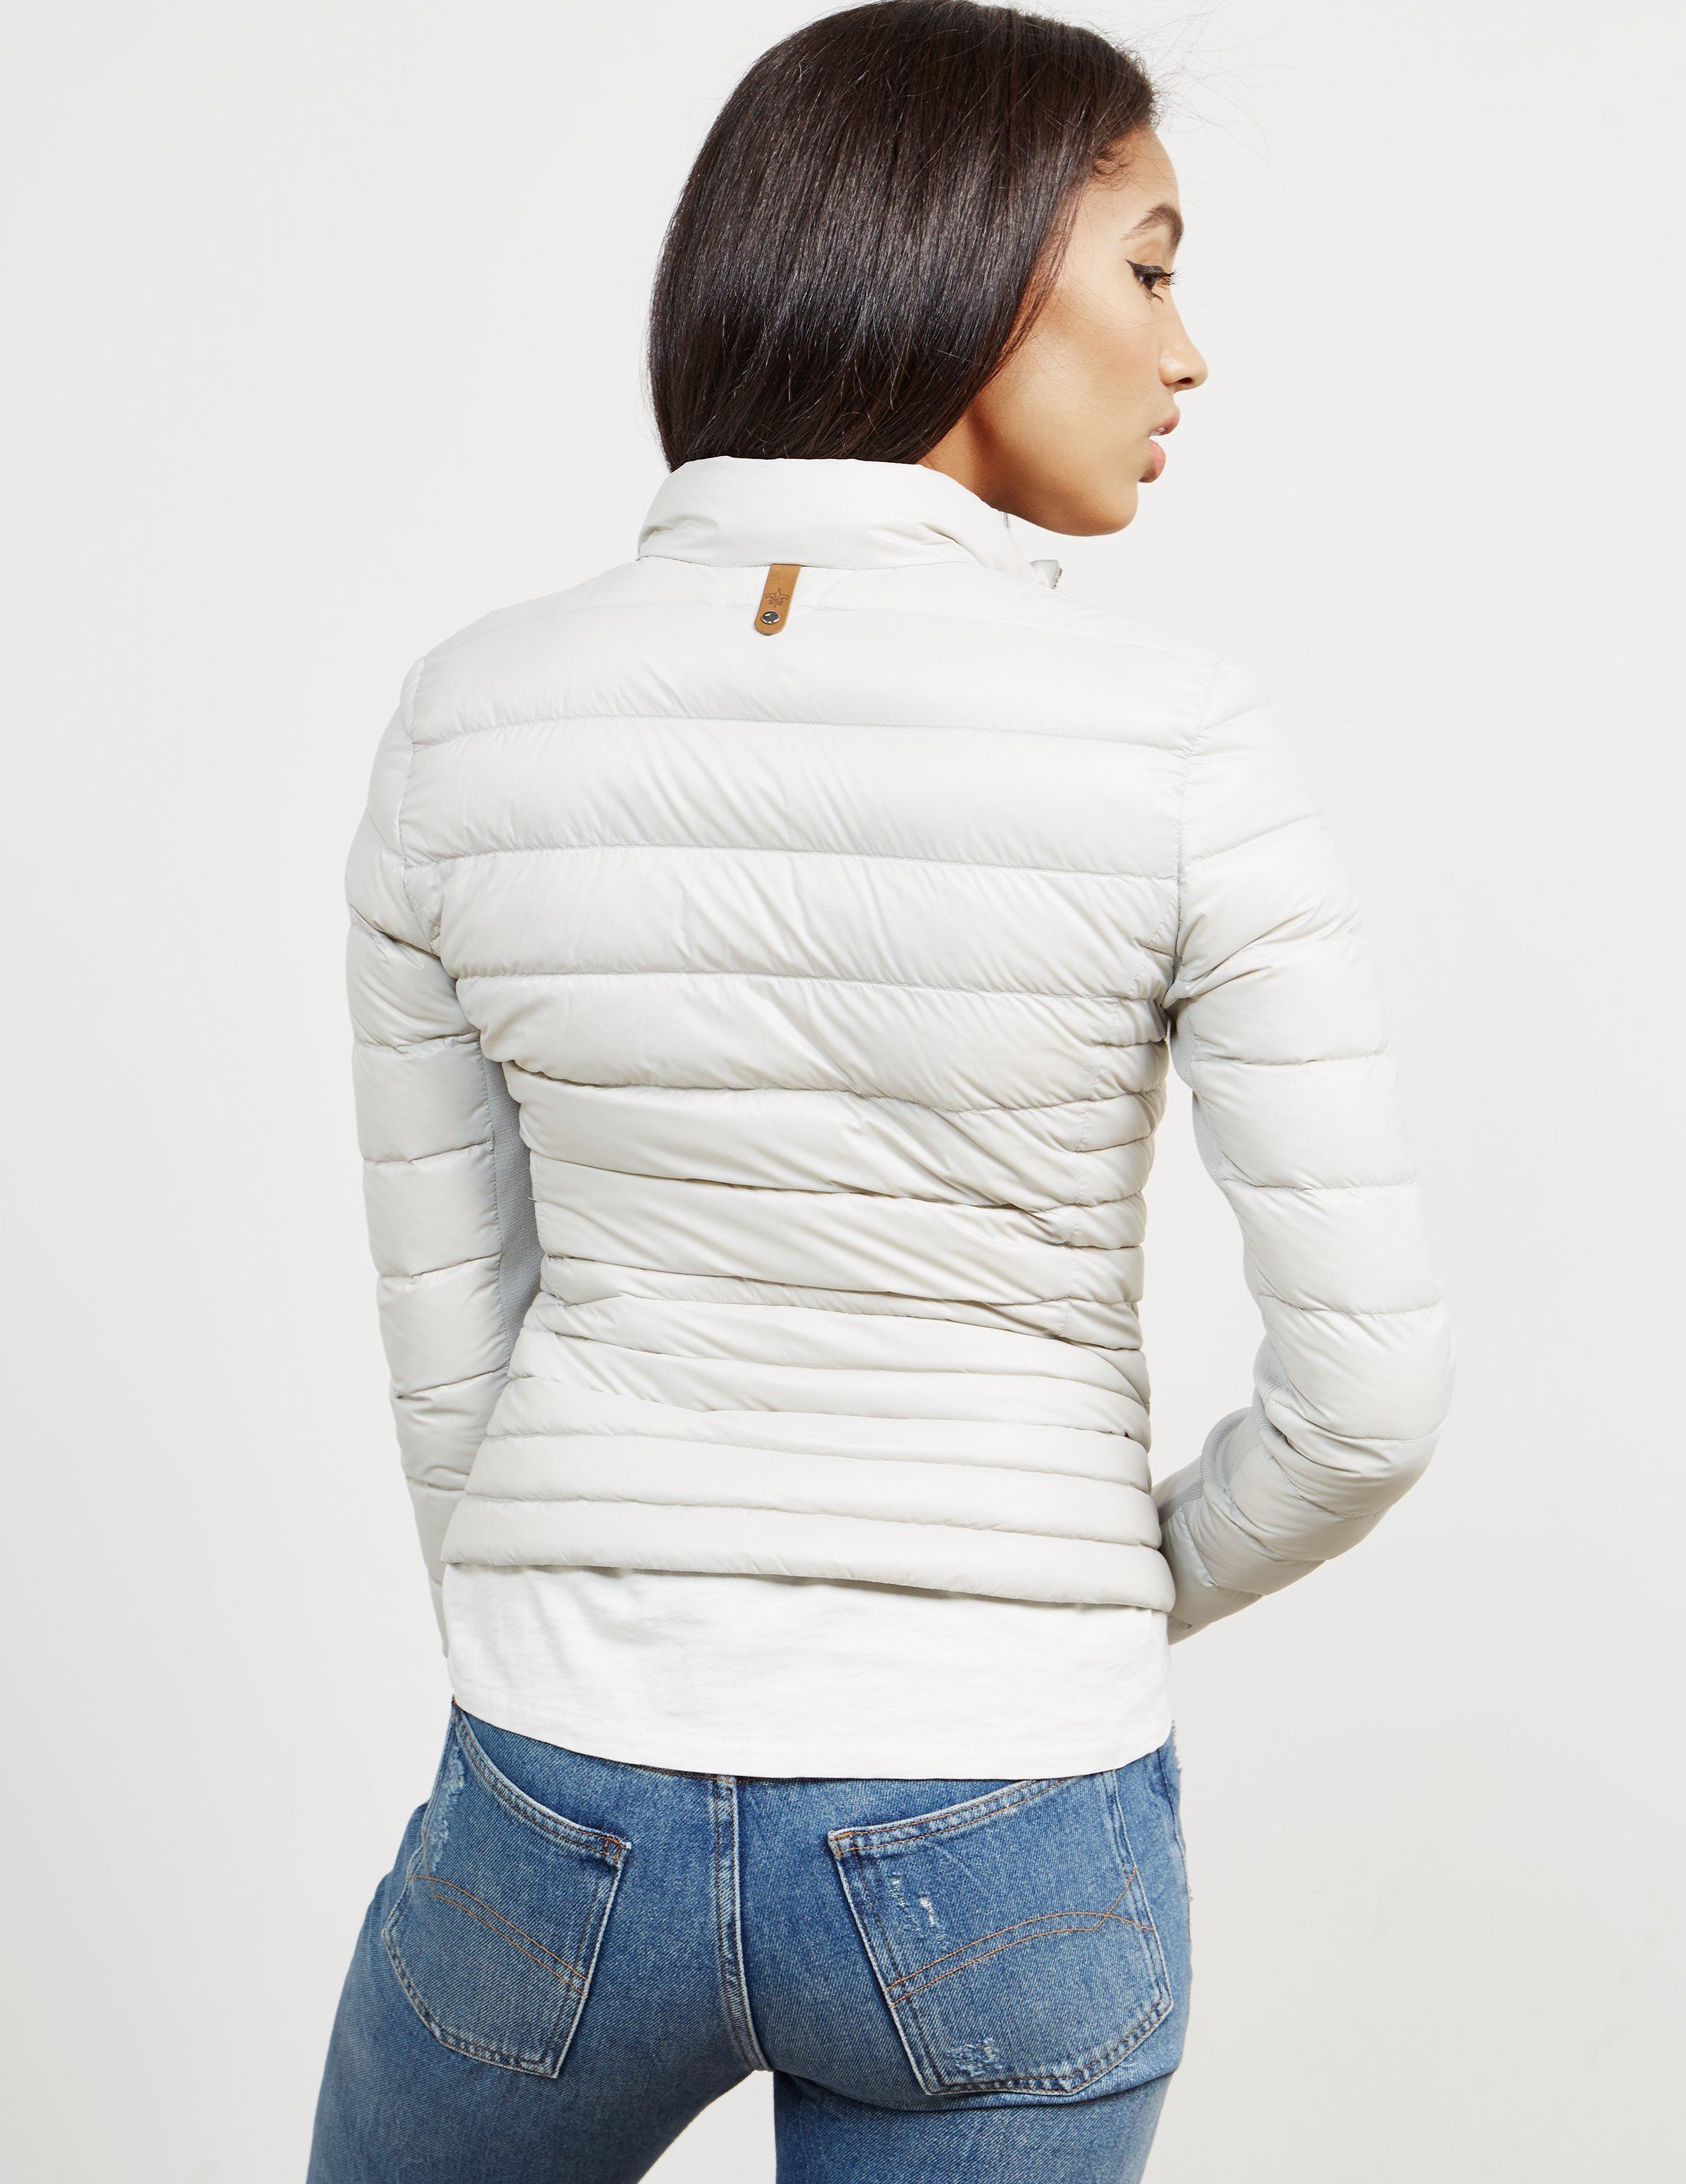 Mackage Cindee Jacket - Online Exclusive